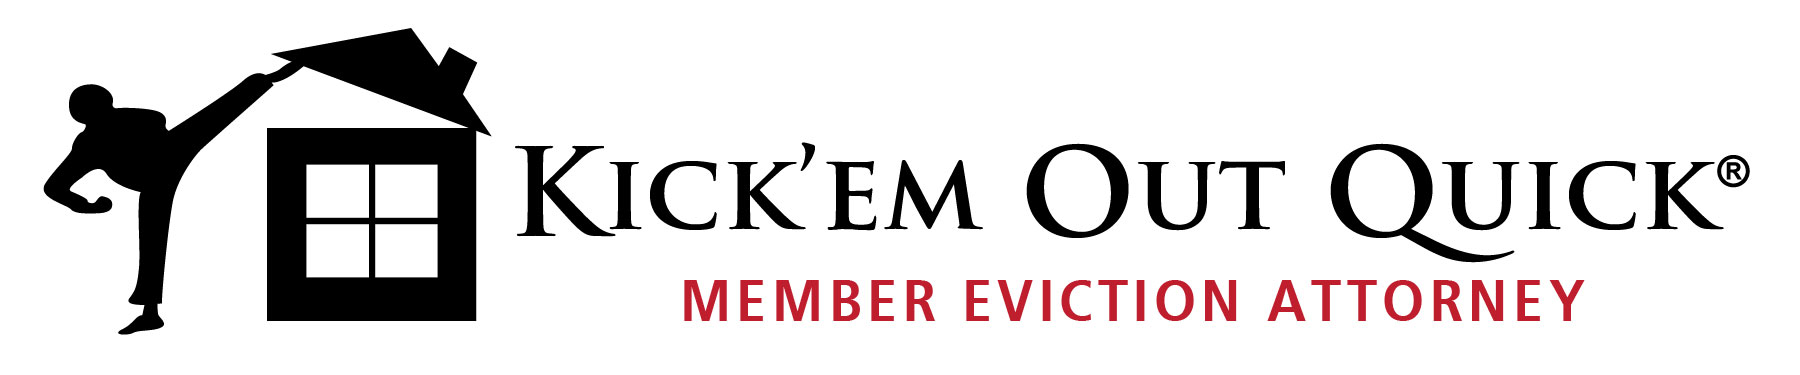 Kick Em Out Quick Member Eviction Attorney Logo 2